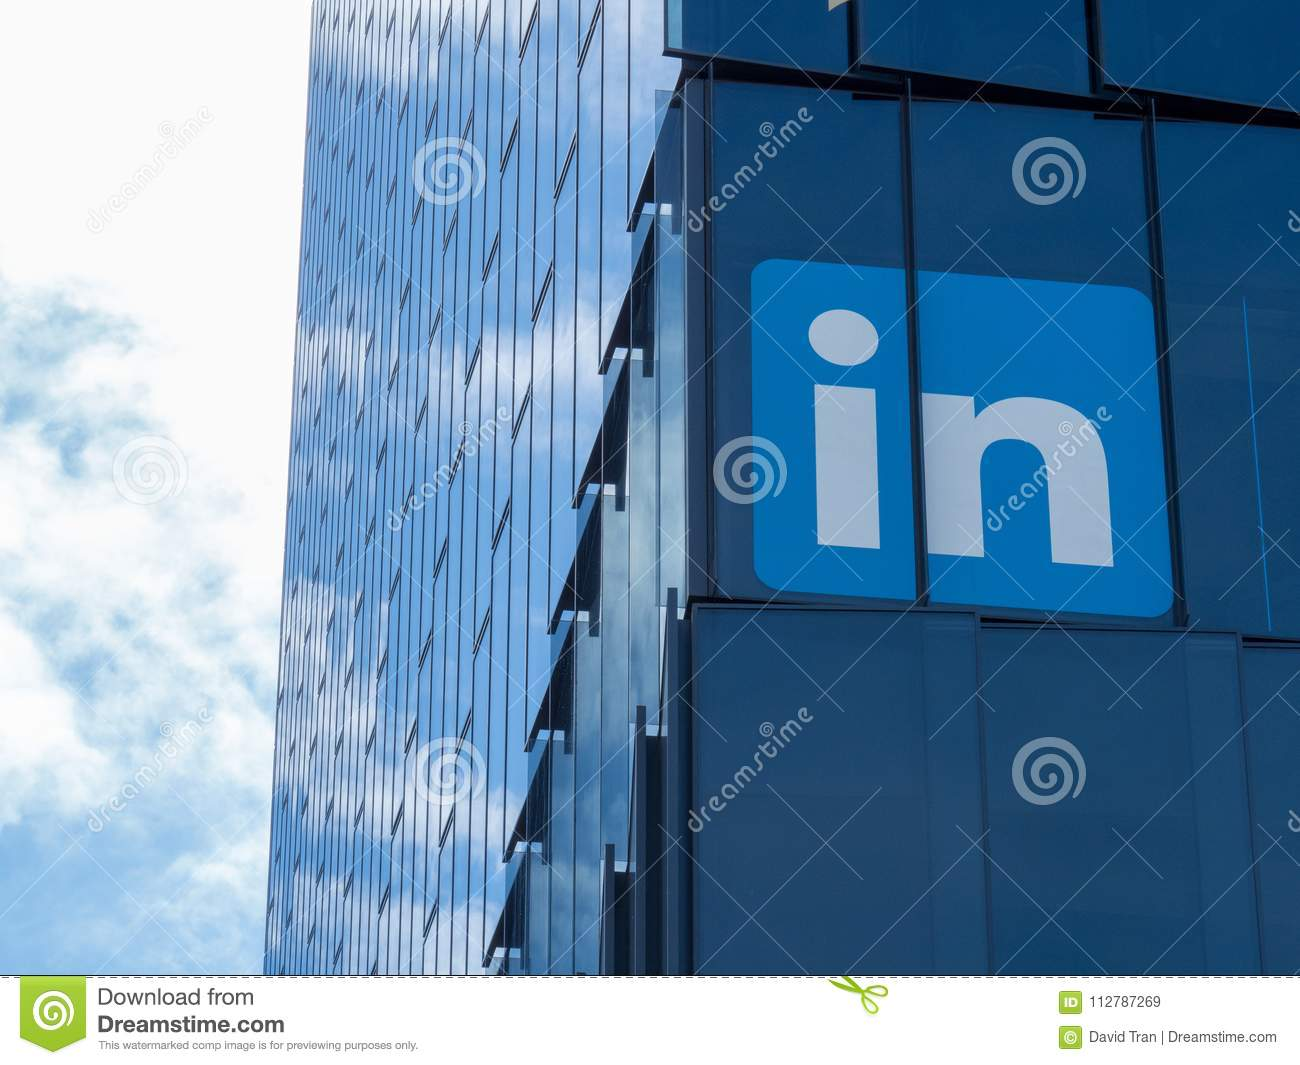 LinkedIn logo på torn i San Francisco